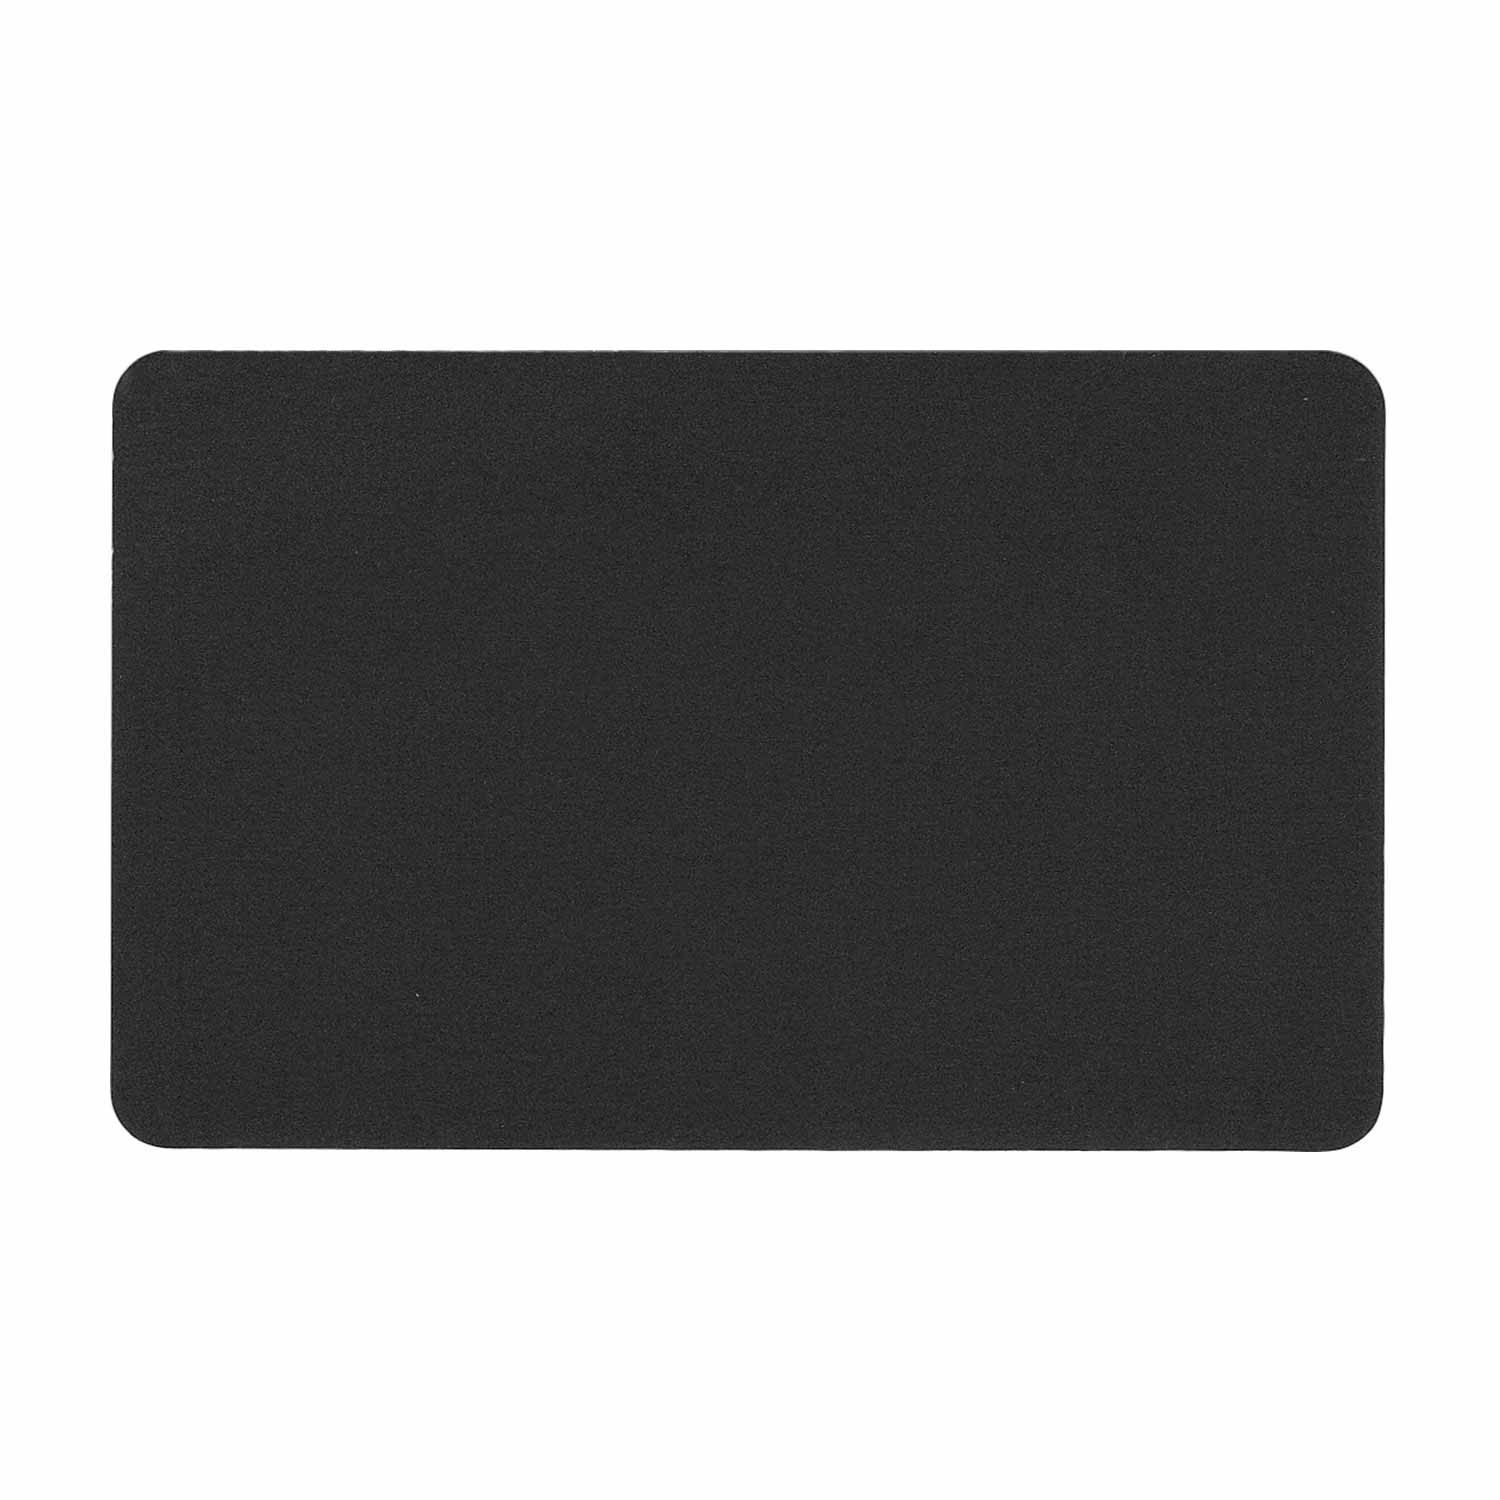 Anodized Aluminum Metal Business Cards Wallet Insert Id Blank for Custom Laser Engraving DIY Gift Card Black